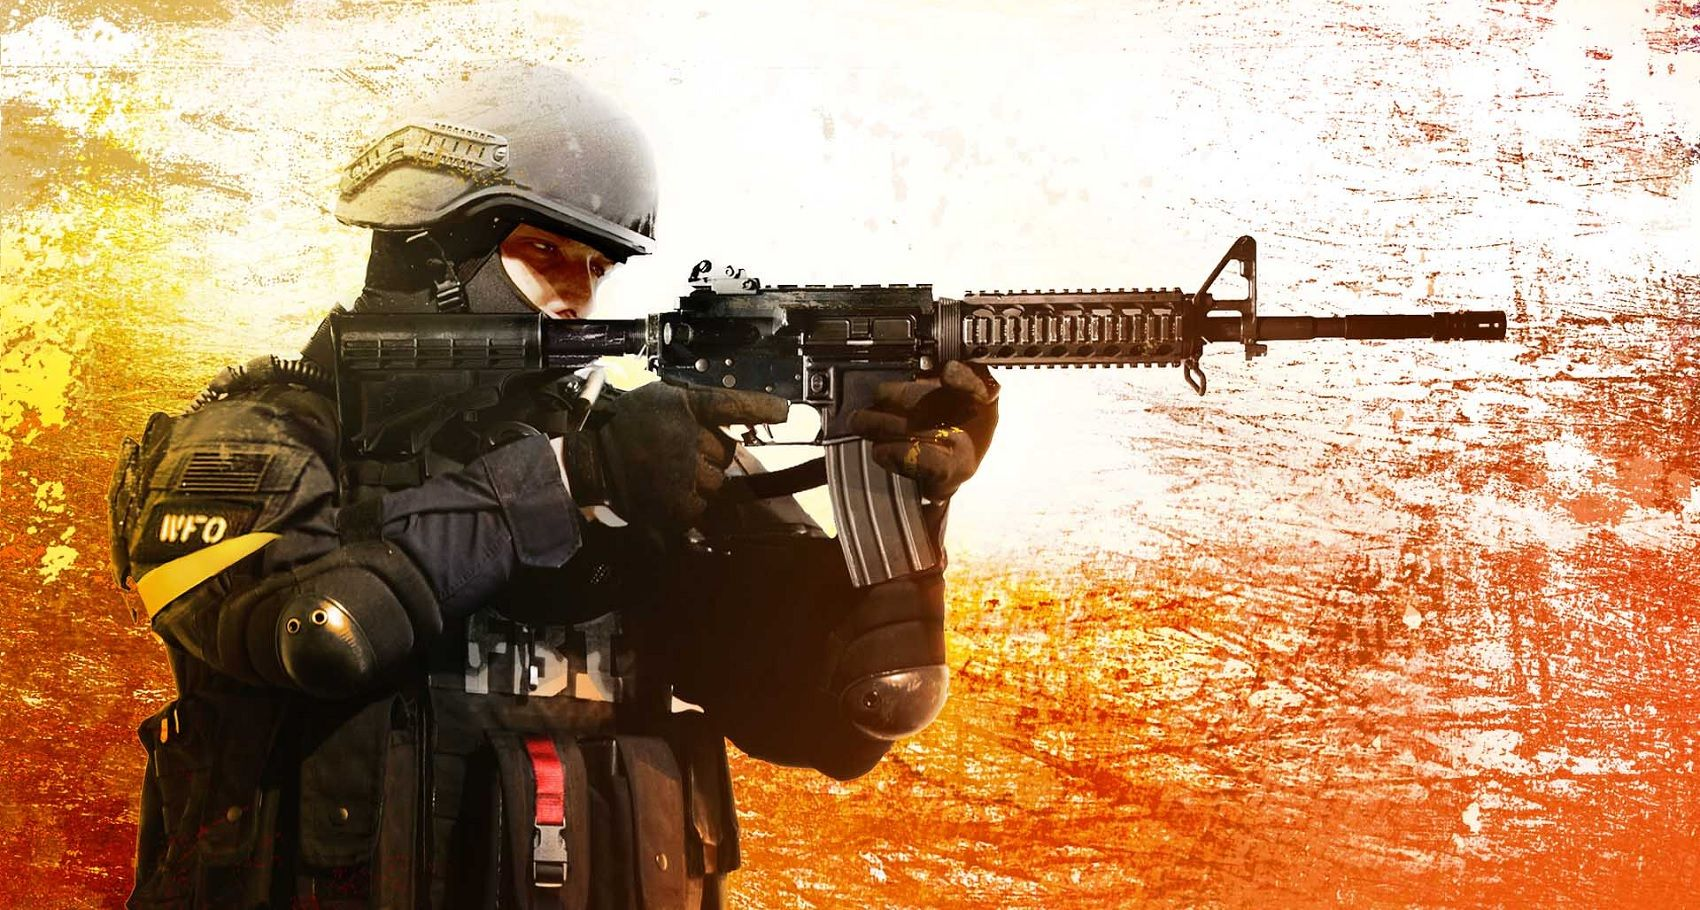 10 Tips To Improve Your Game In Counter-Strike: Global Offensive